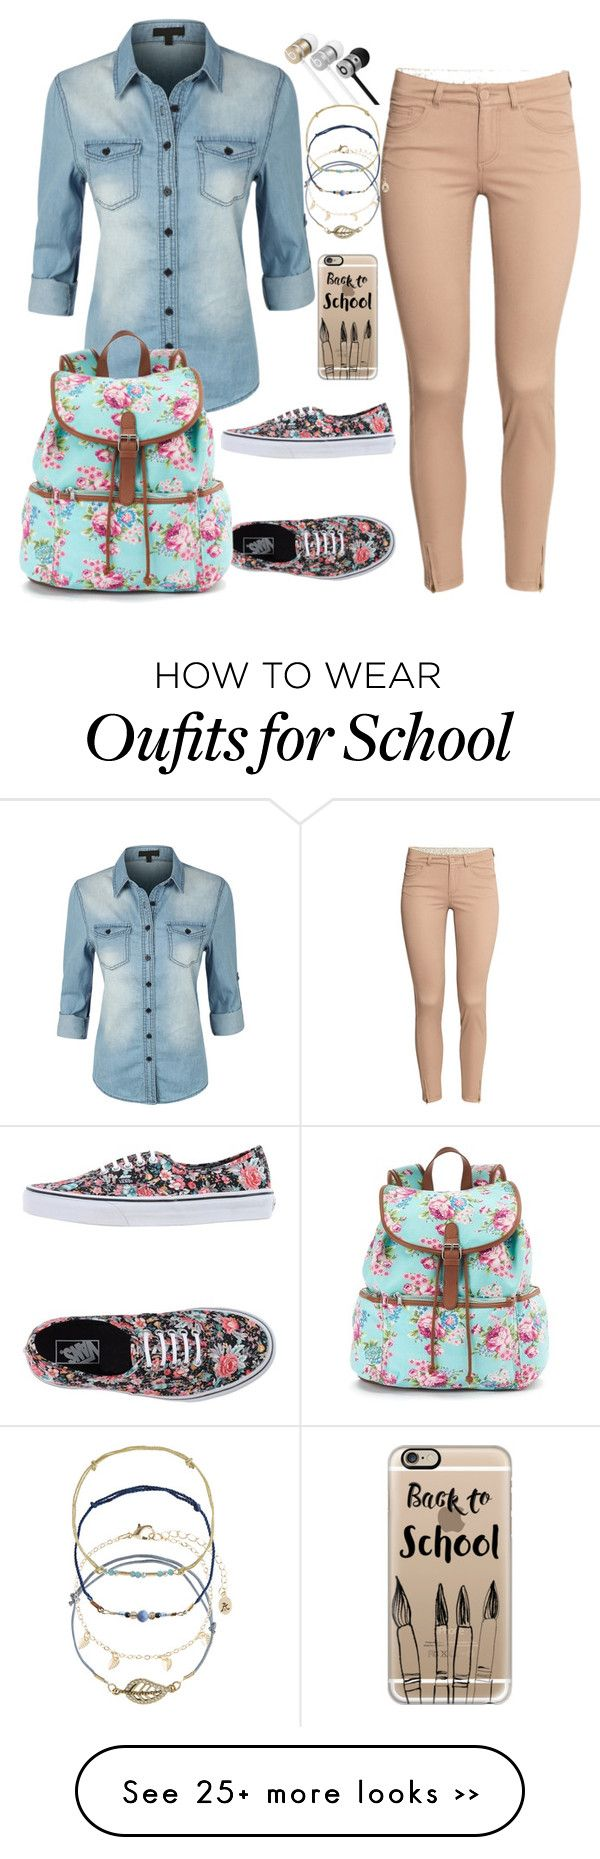 """back to school"" by cvetina-borisova on Polyvore featuring H&M, Vans, Casetify, Accessorize, Beats by Dr. Dre, LE3NO and Candie's"